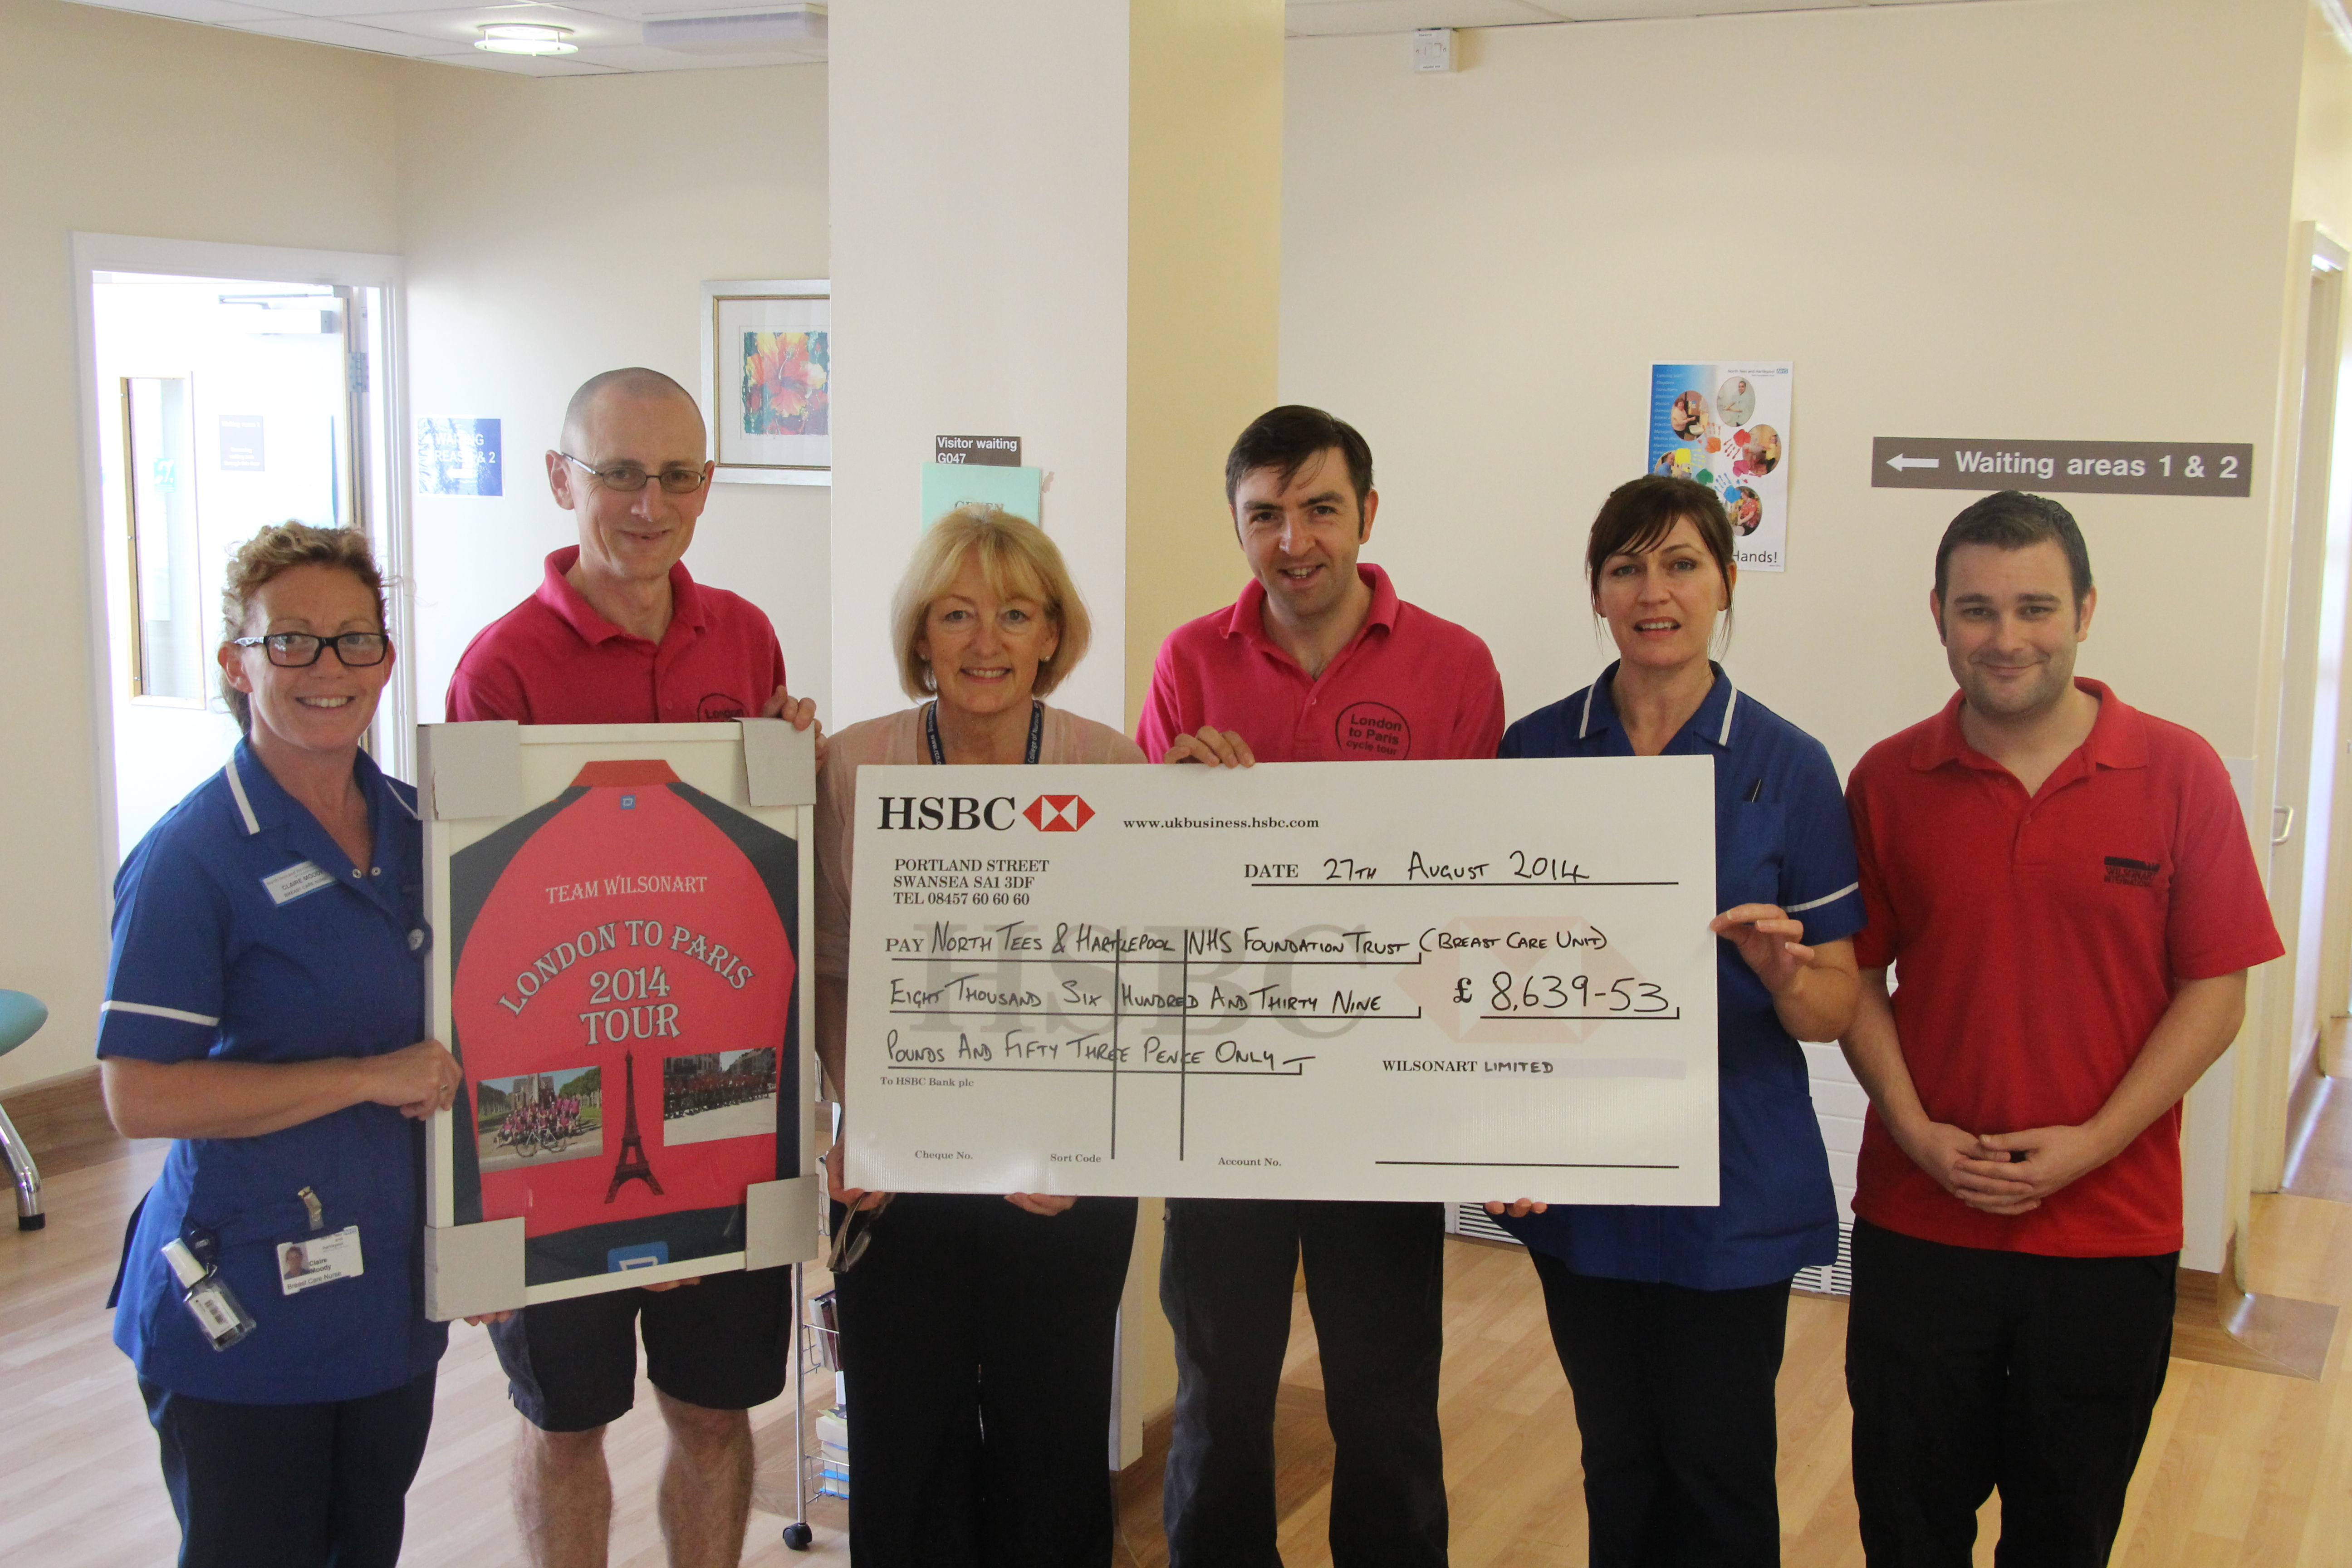 GRUELING THREE DAY CHARITY CHALLENGE RAISES MORE THAN TARGET